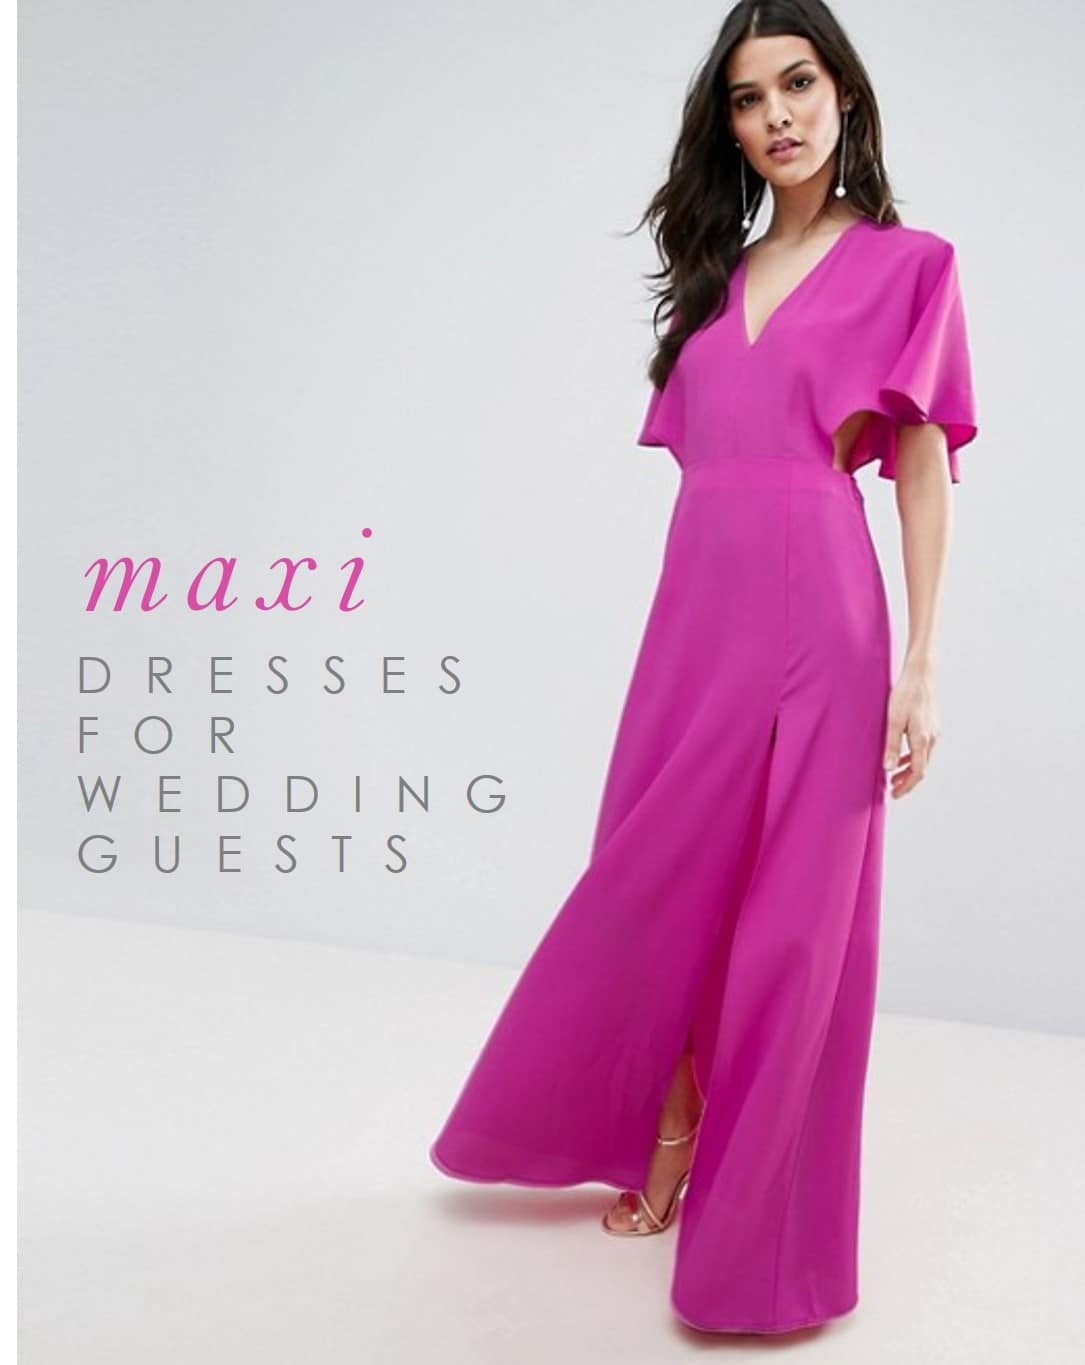 maxi dresses for weddings formal dresses for weddings Maxi Dresses for Wedding Guests